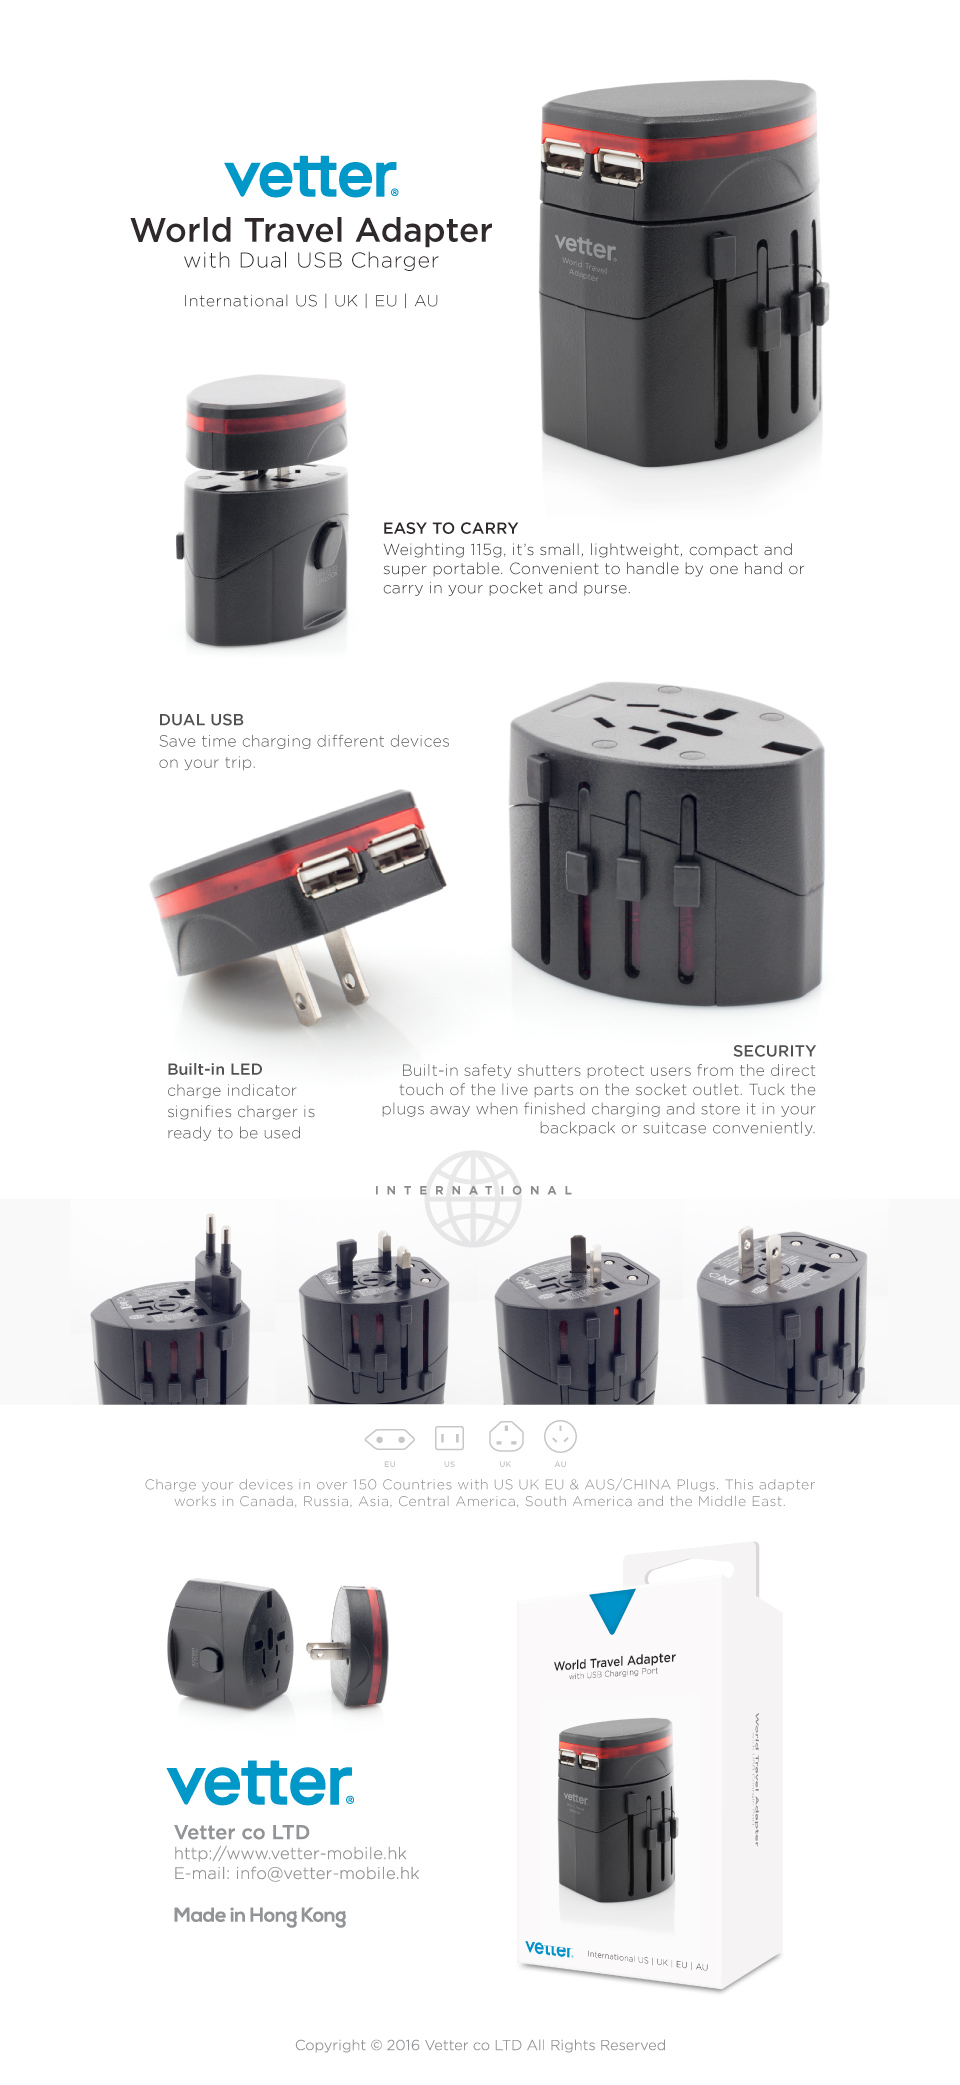 [20160704]_Prezentare-World-Travel-Adapter.jpg